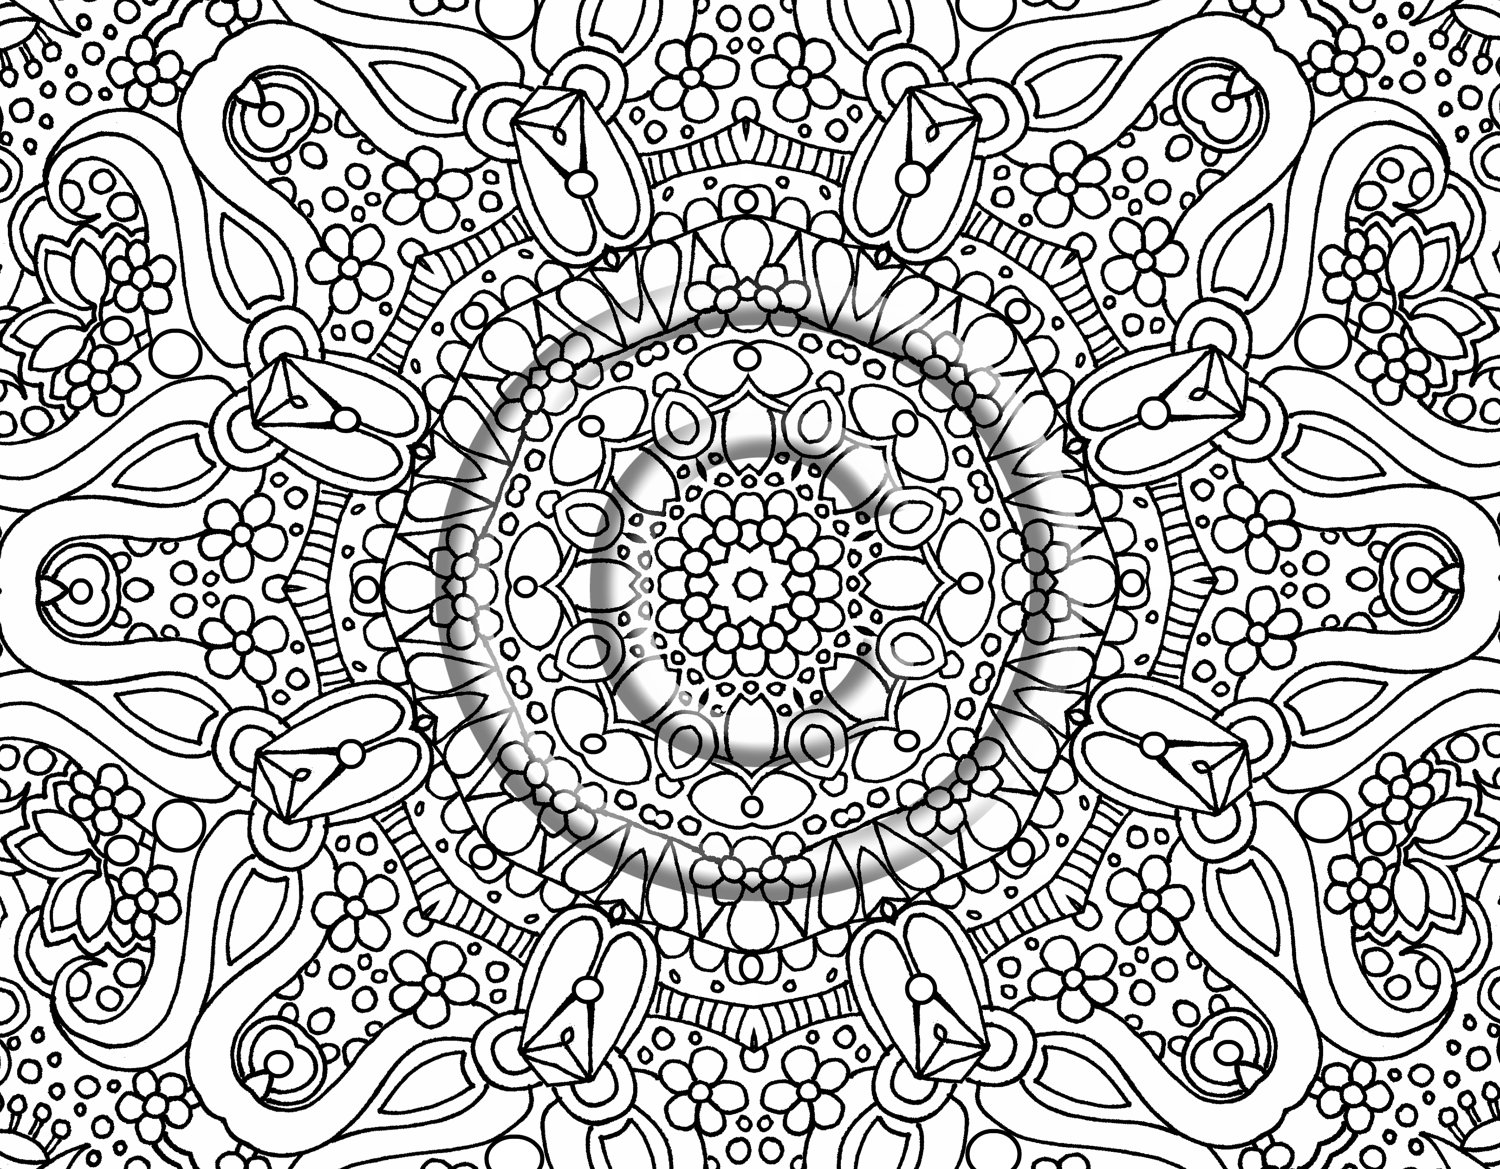 free printable pictures to color 20 free printable adult coloring pages patterns flowers printable color to free pictures